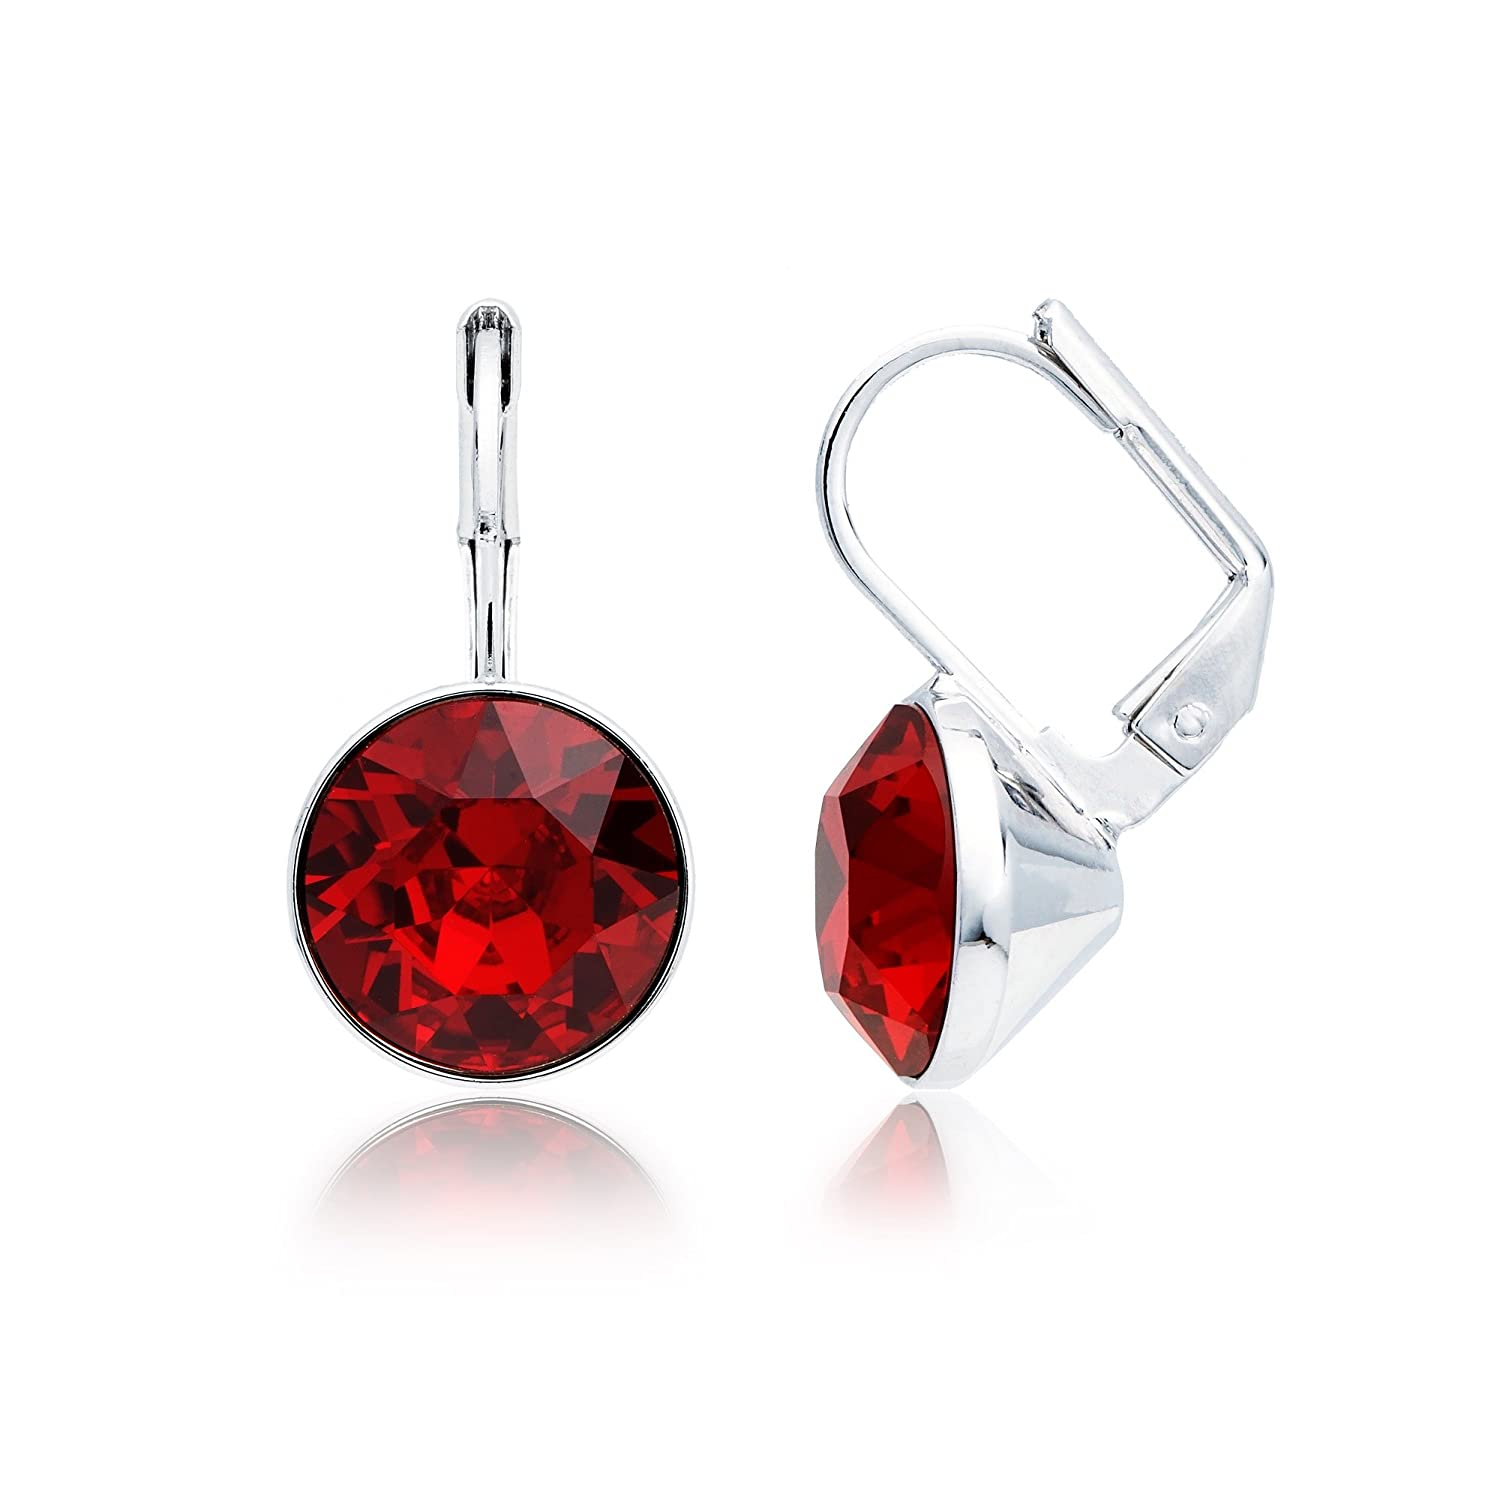 00972fe37 Amazon.com: MYJS Bella Rhodium Plated Mini Drop Earrings with Ruby Red Swarovski  Crystals: Jewelry